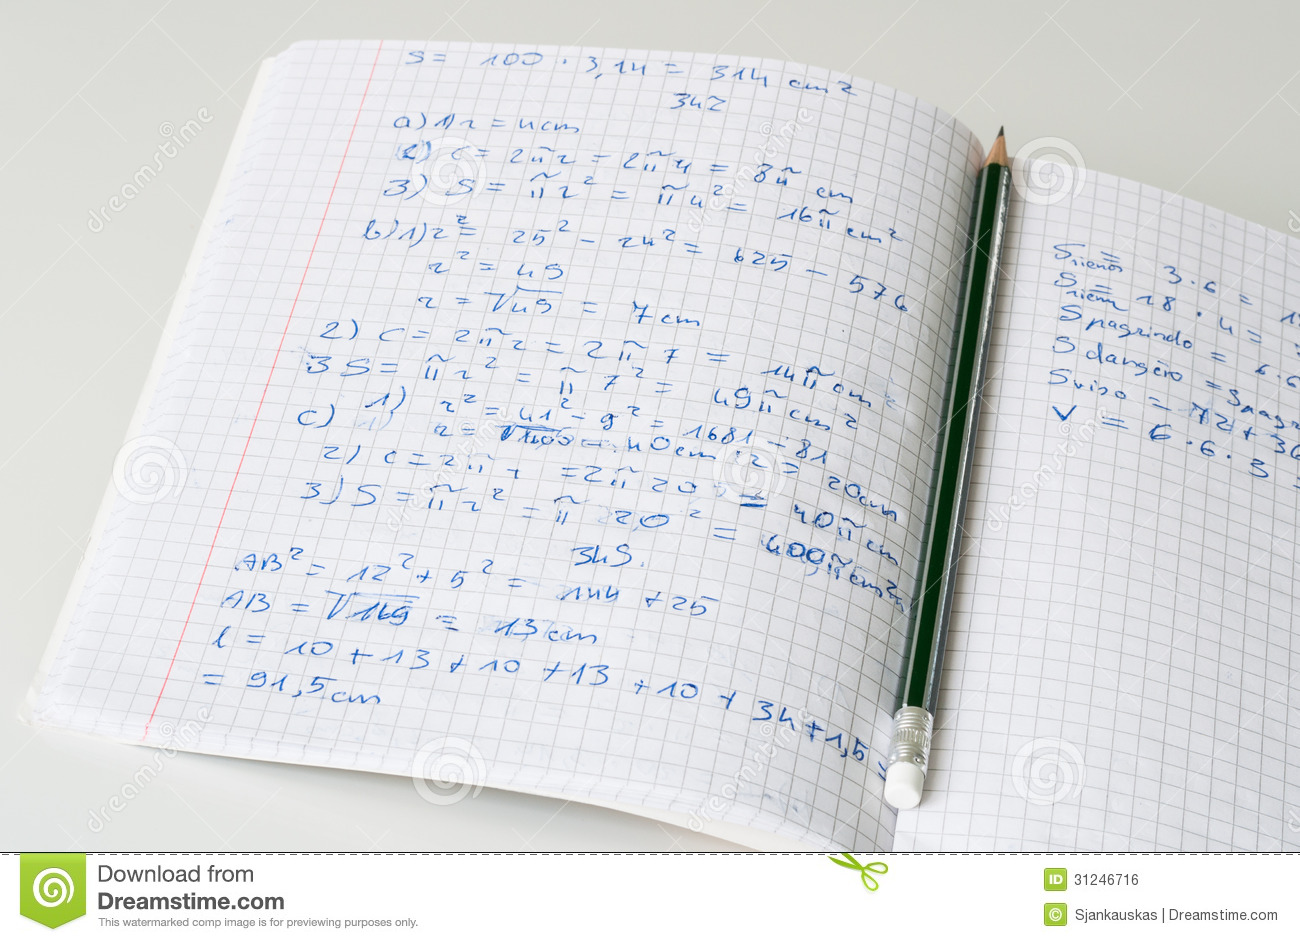 map maths with Royalty Free Stock Image Maths Exercise Book Exercisebook Pencil White Table Image31246716 on Implementation Of Semantic Mapping 3742784 likewise Drama moreover Royalty Free Stock Image Maths Exercise Book Exercisebook Pencil White Table Image31246716 besides How Long Day together with New logo and identity for wgsn group by venturethree.